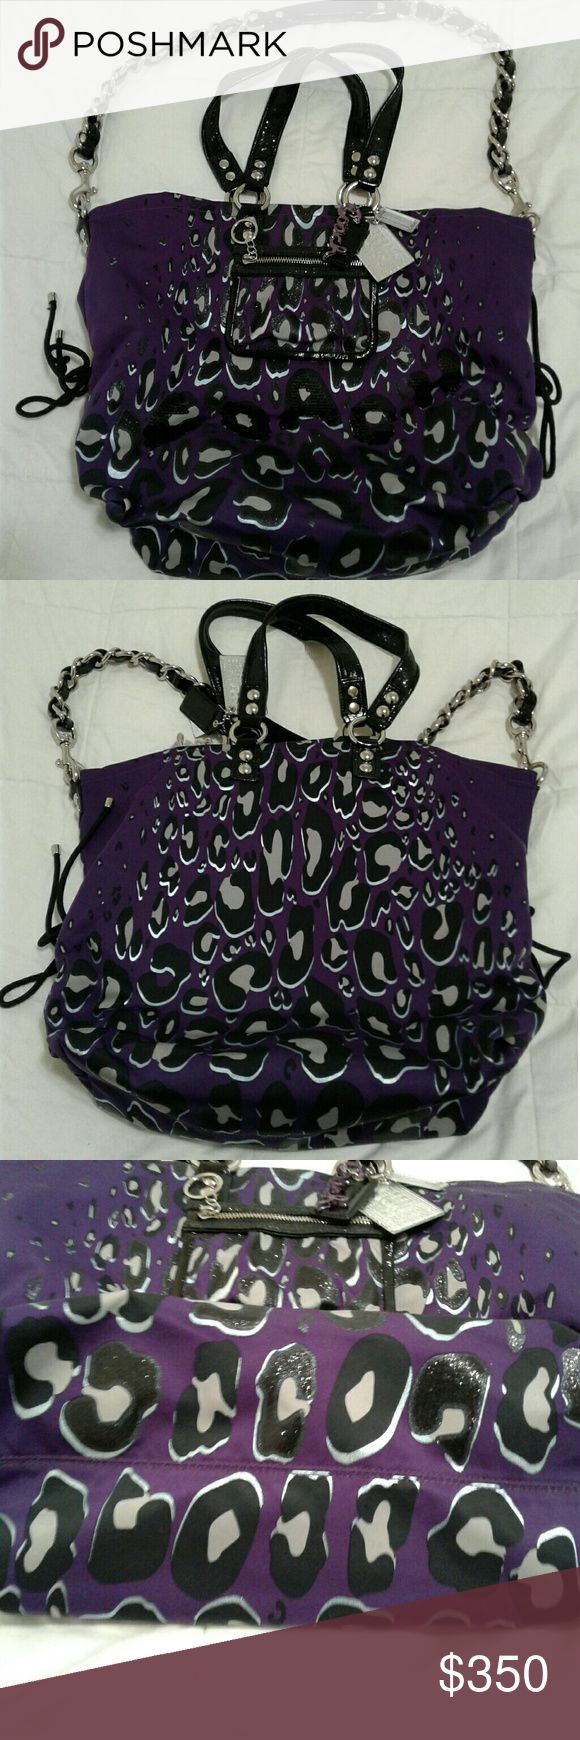 """Coach Poppy Ocelot Sequin XL Spotlight Hard to find. Coach Poppy Ocelot Sequin XL Spotlight. Sequin top handles, 9"""" drop. Detachable longer strap for crossbody wear, 19"""" drop, with chain and patent leather. Coach Bags Totes"""